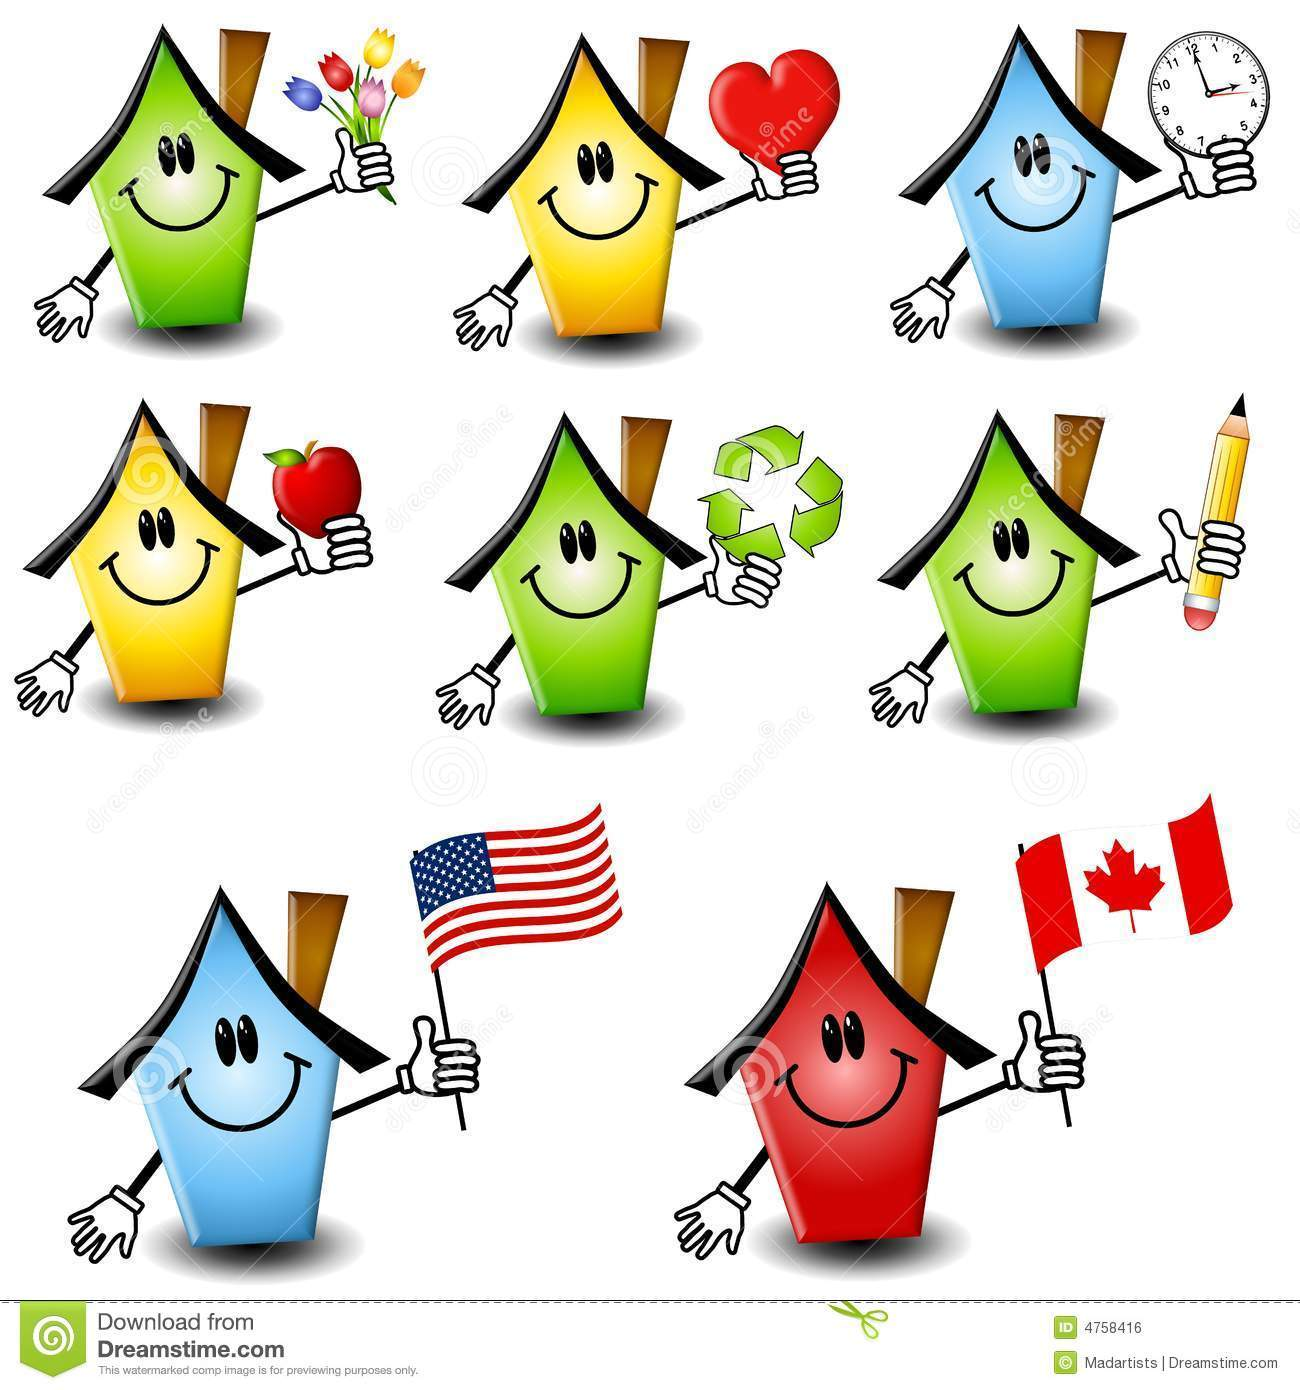 8 objects clipart png transparent library 8 objects clipart 2 » Clipart Portal png transparent library